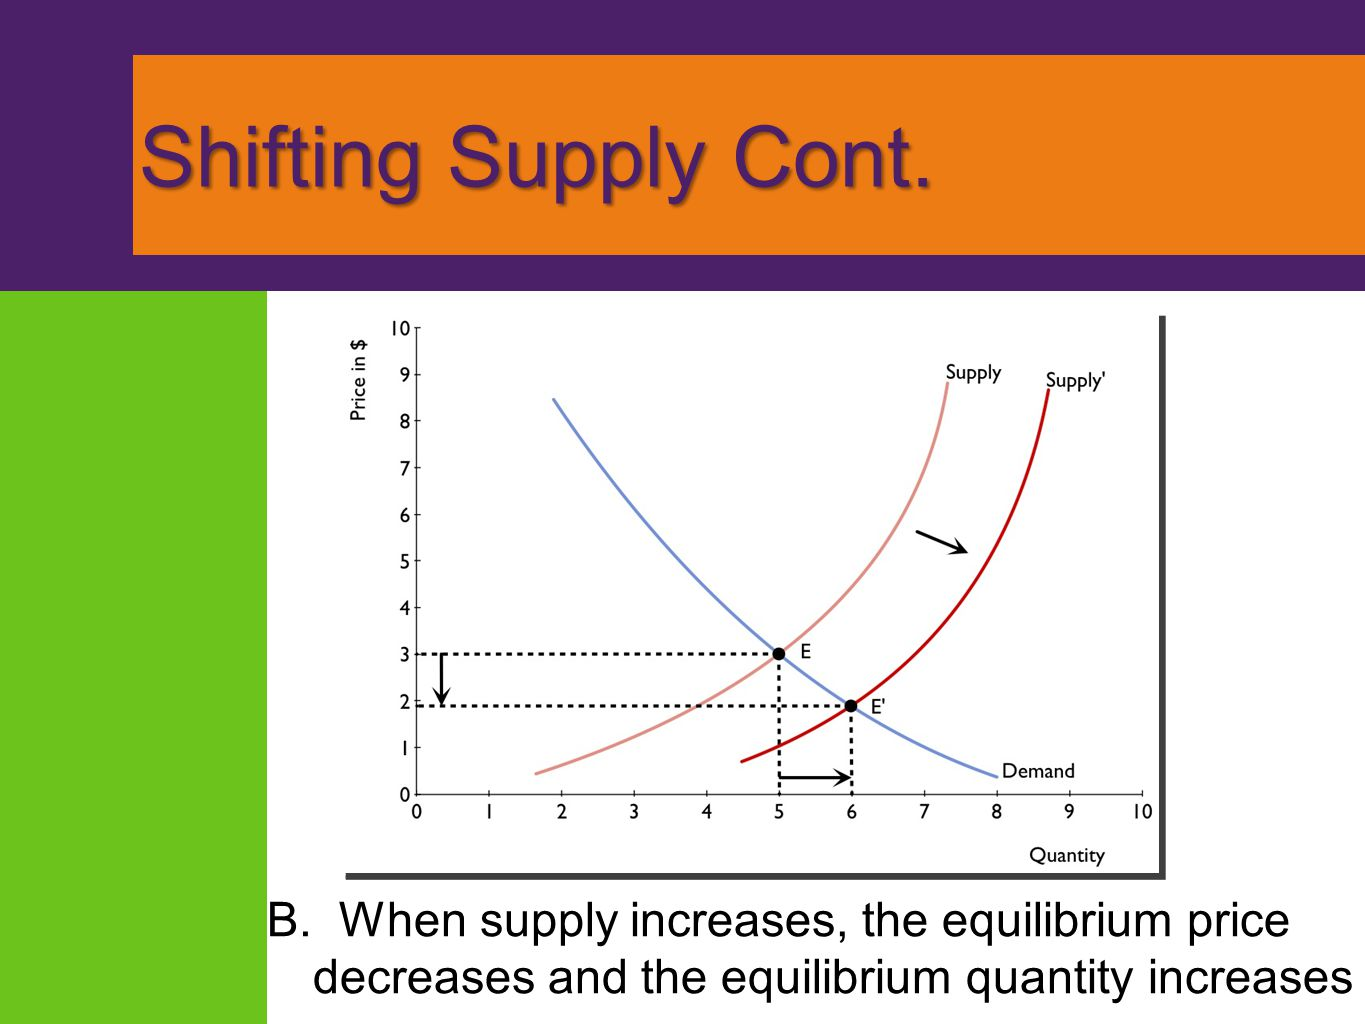 Shifting Supply Cont. B. When supply increases, the equilibrium price decreases and the equilibrium quantity increases